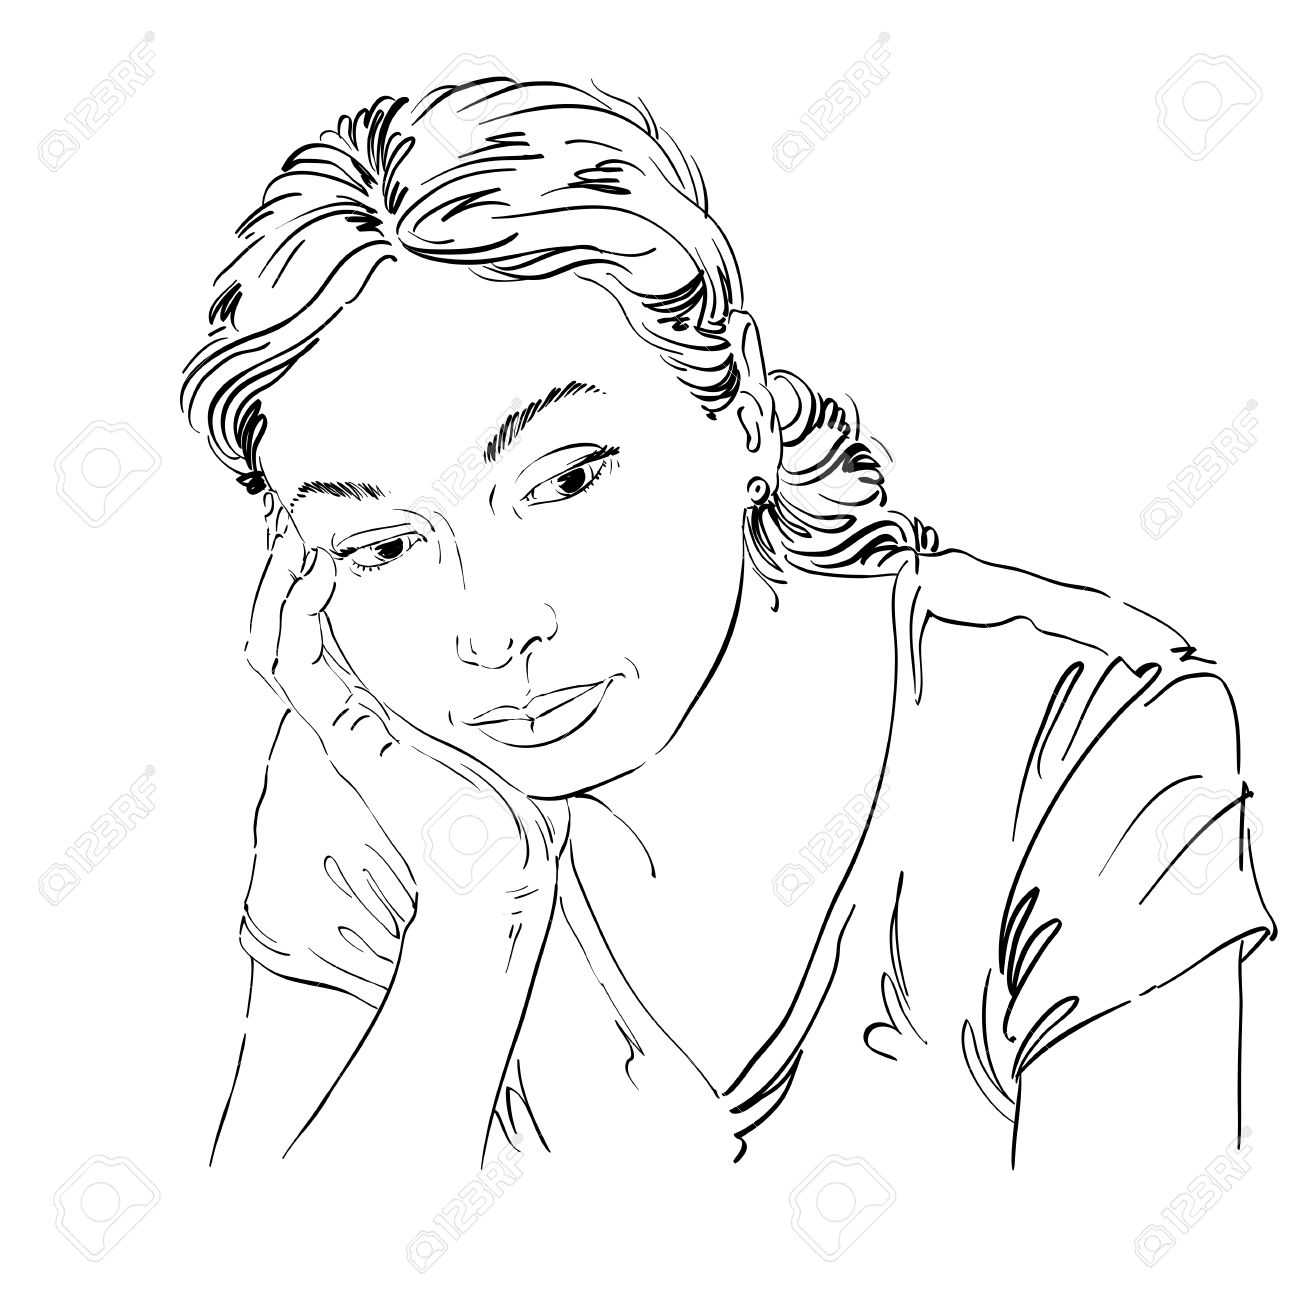 1300x1300 Vector Art Drawing, Portrait Of Sad And Depressed Girl, Thinking